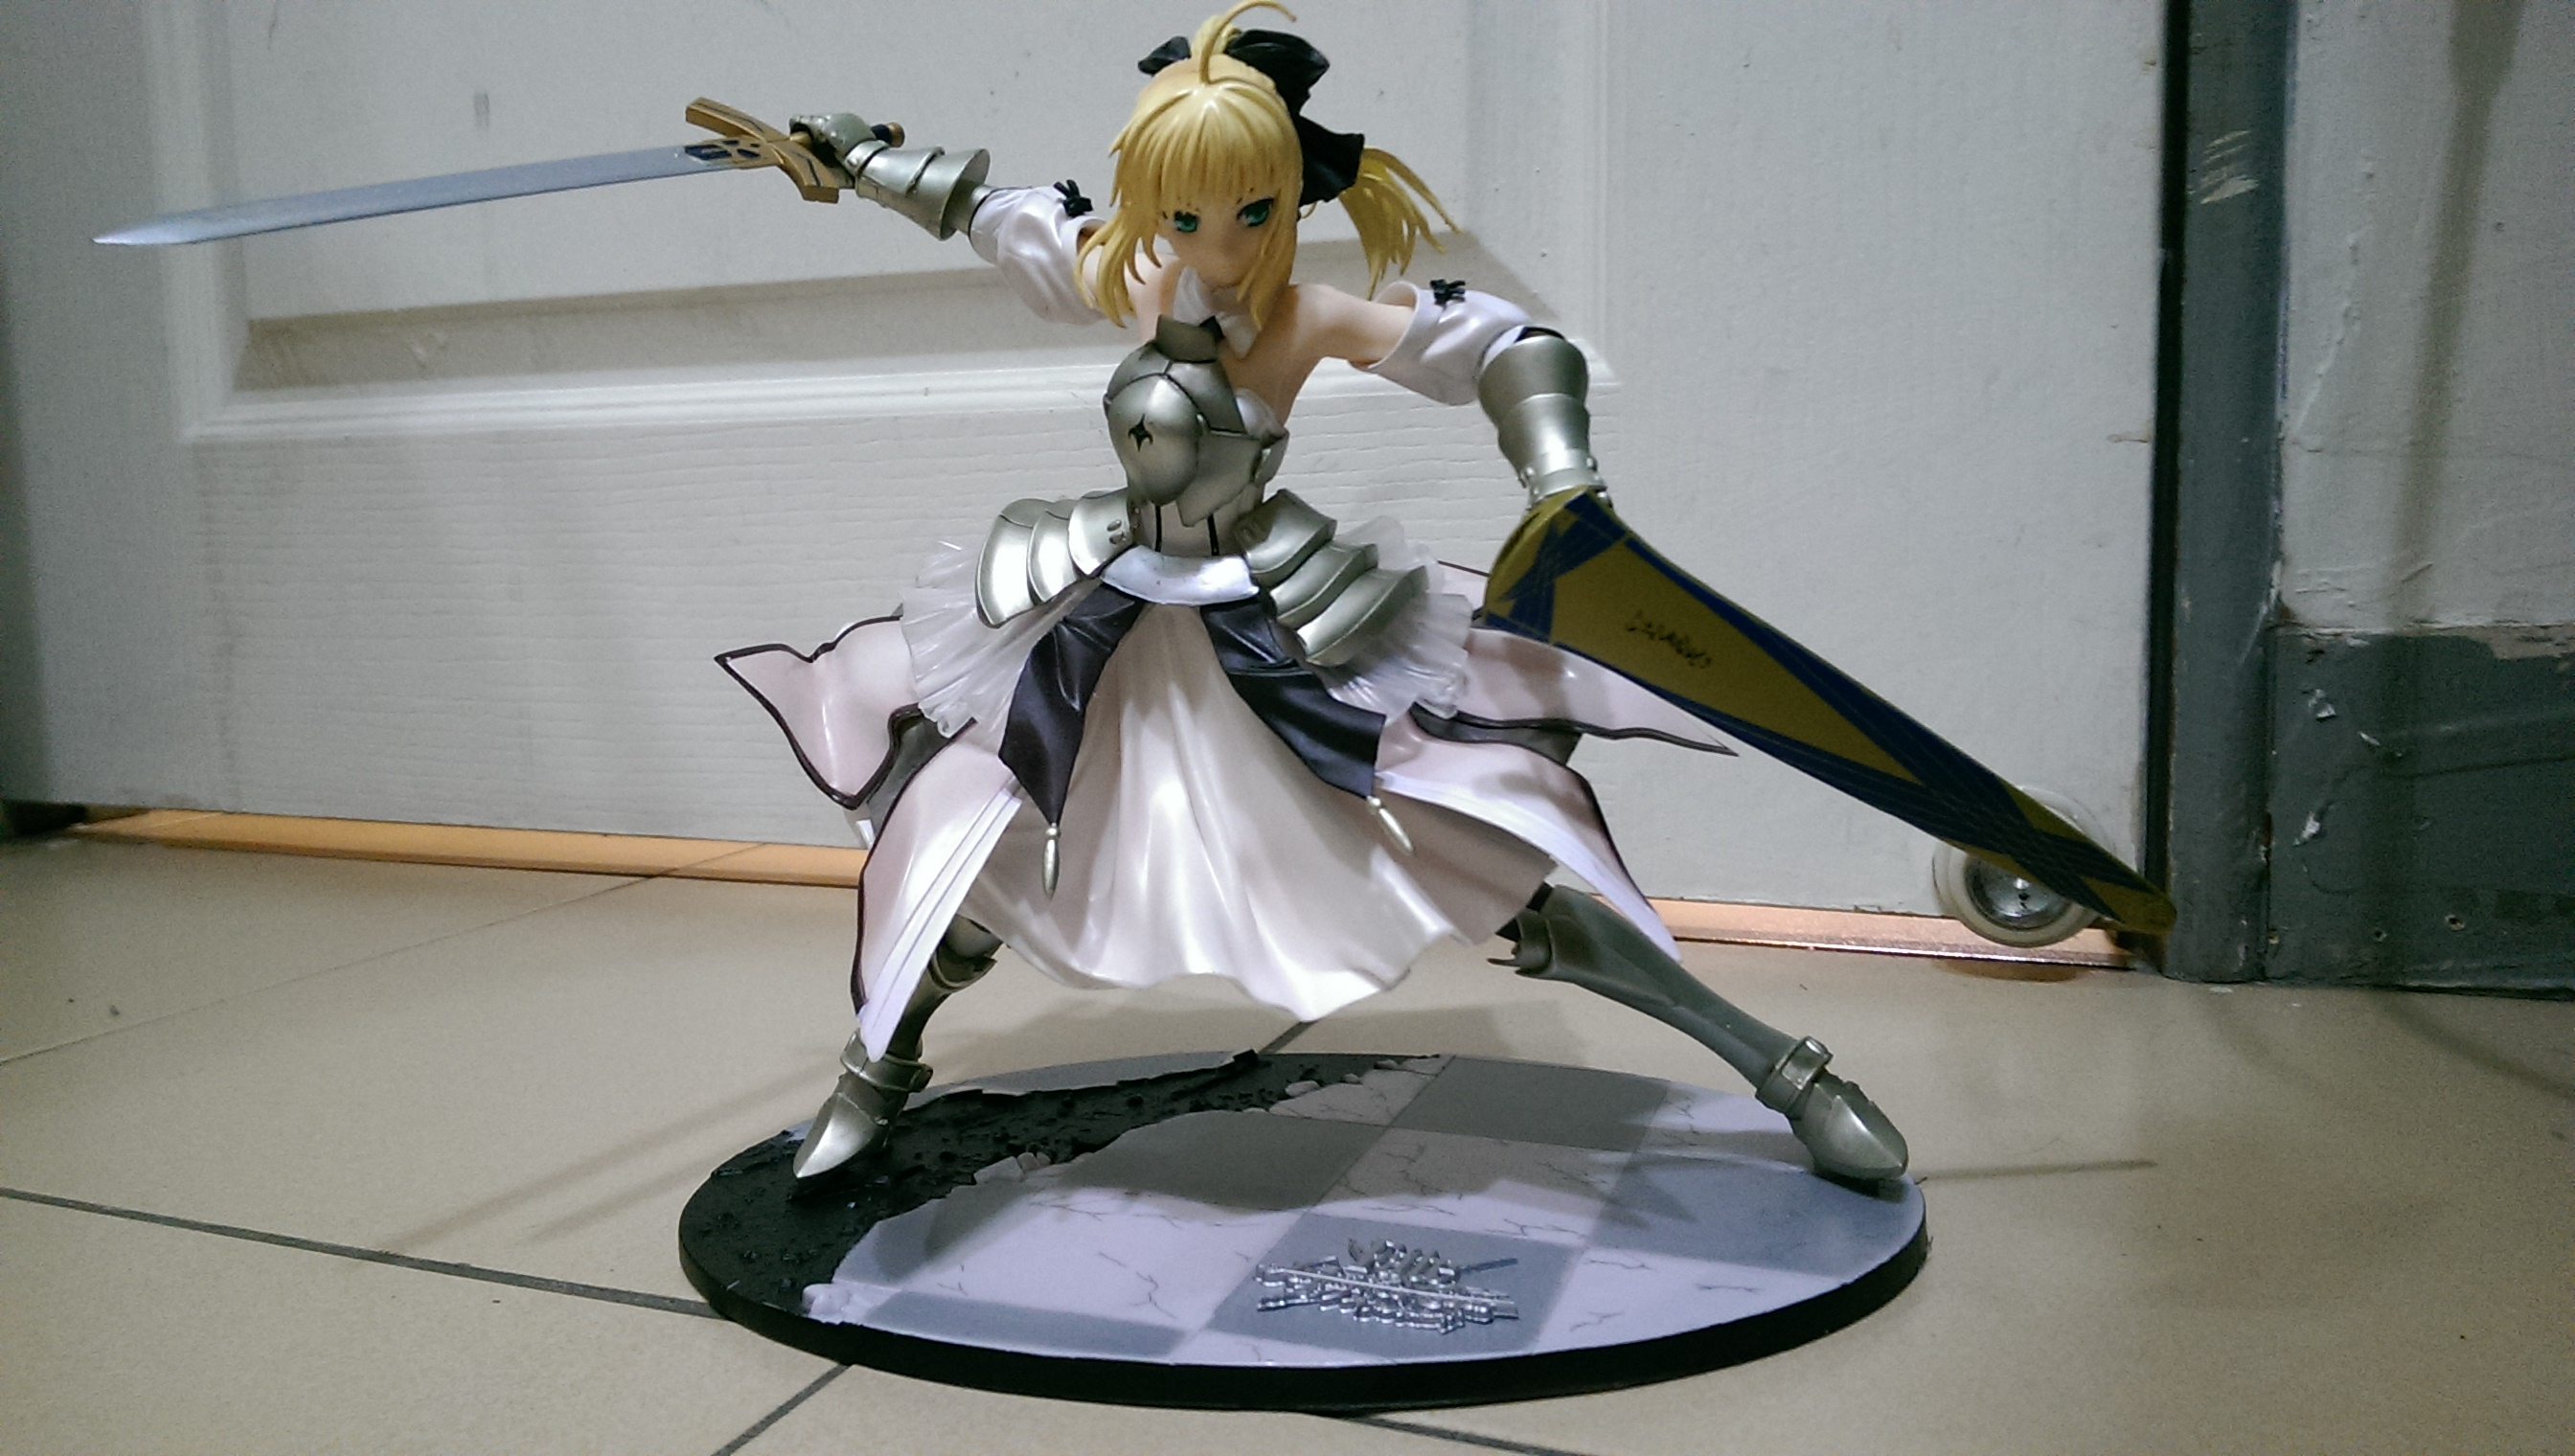 Fate/EXTRA Saber Lily Anime Garage Kits Dolls  Figure Statue-Garage Kit Dolls